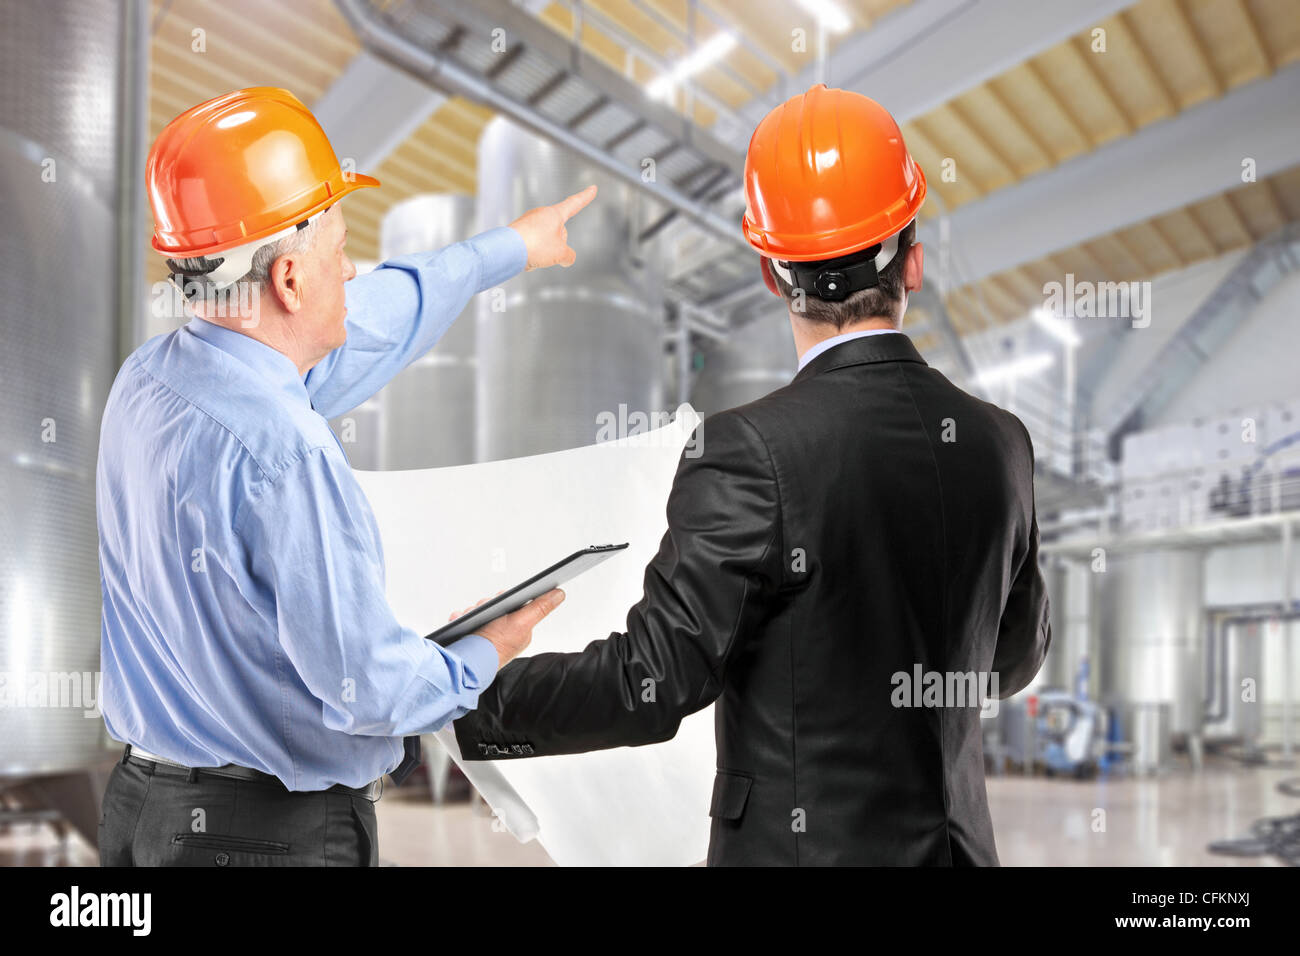 A team of construction workers with orange helmets at work place in a factory Stock Photo